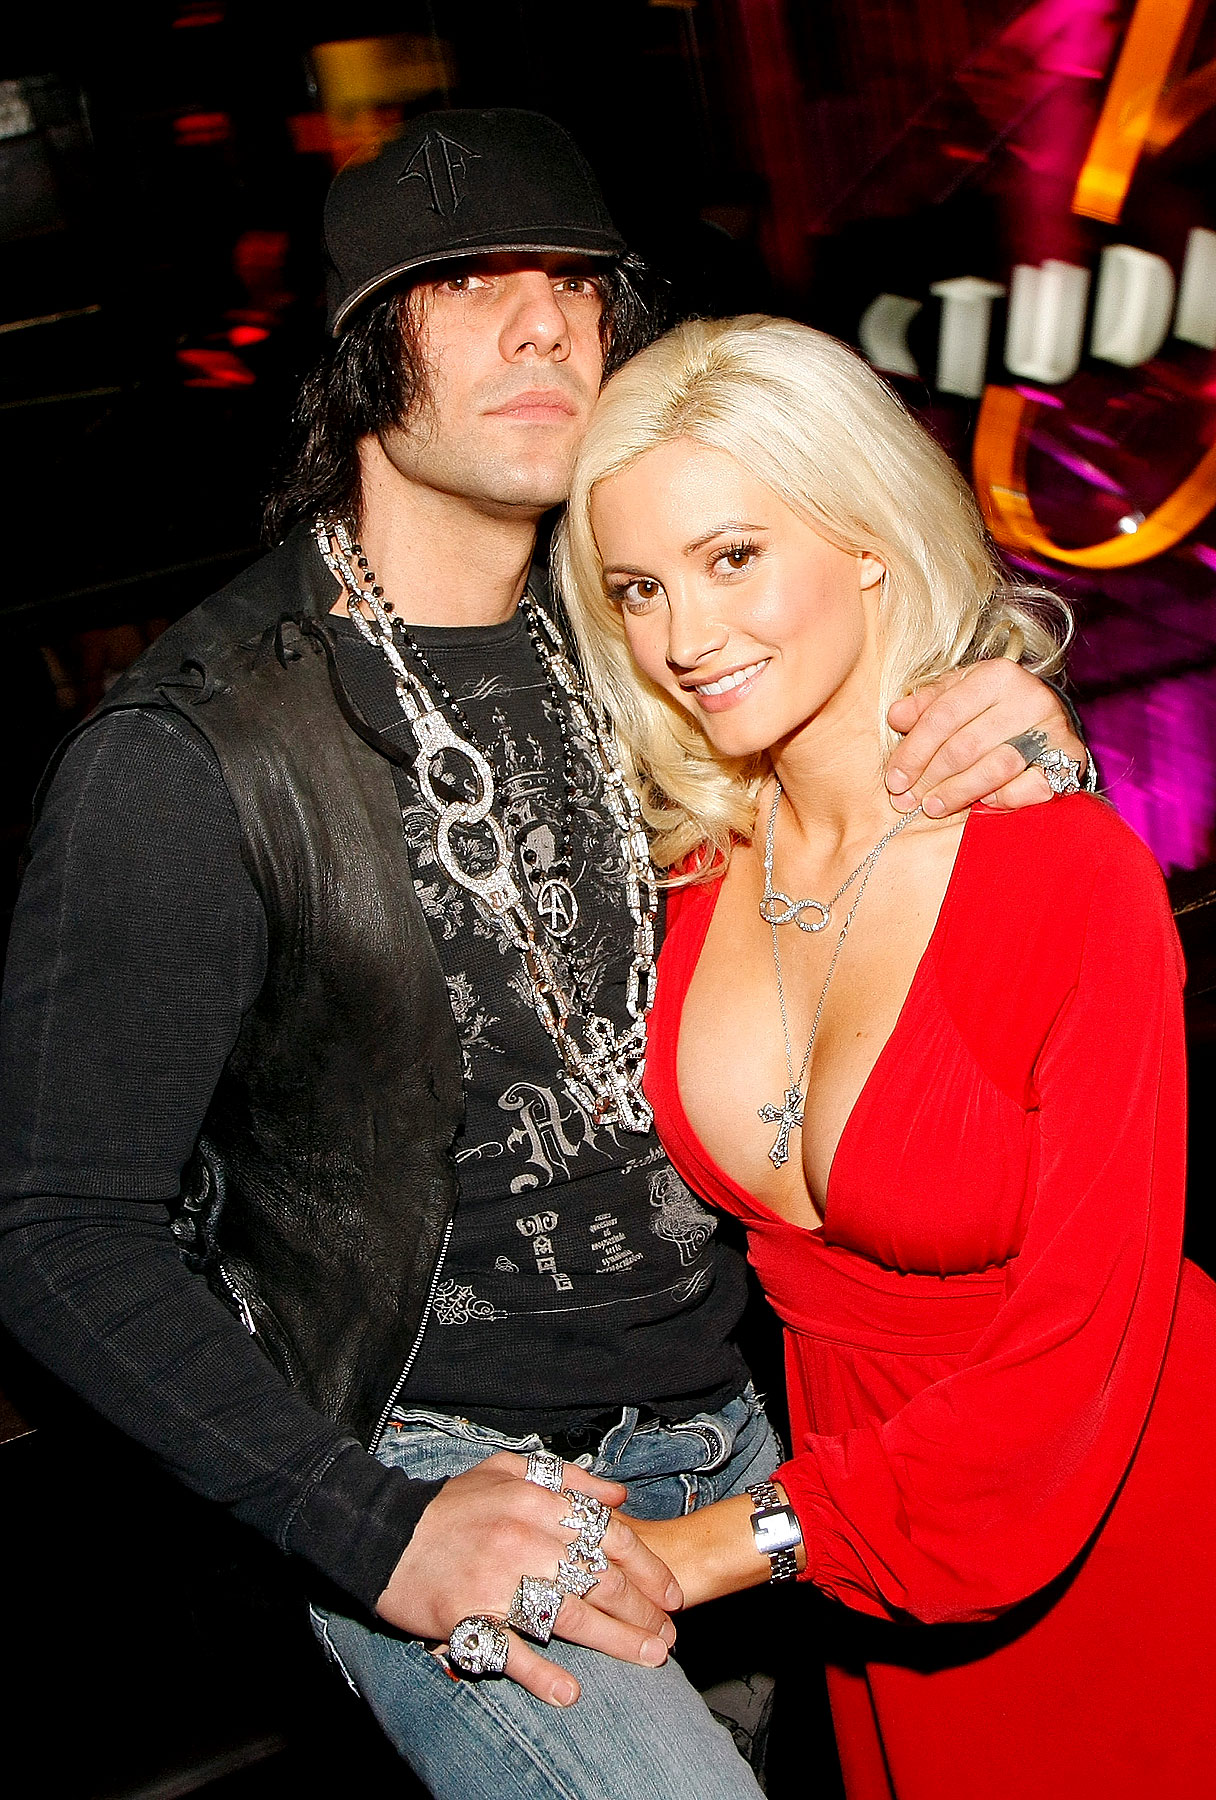 The Magic is Back For Criss Angel and Holly Madison